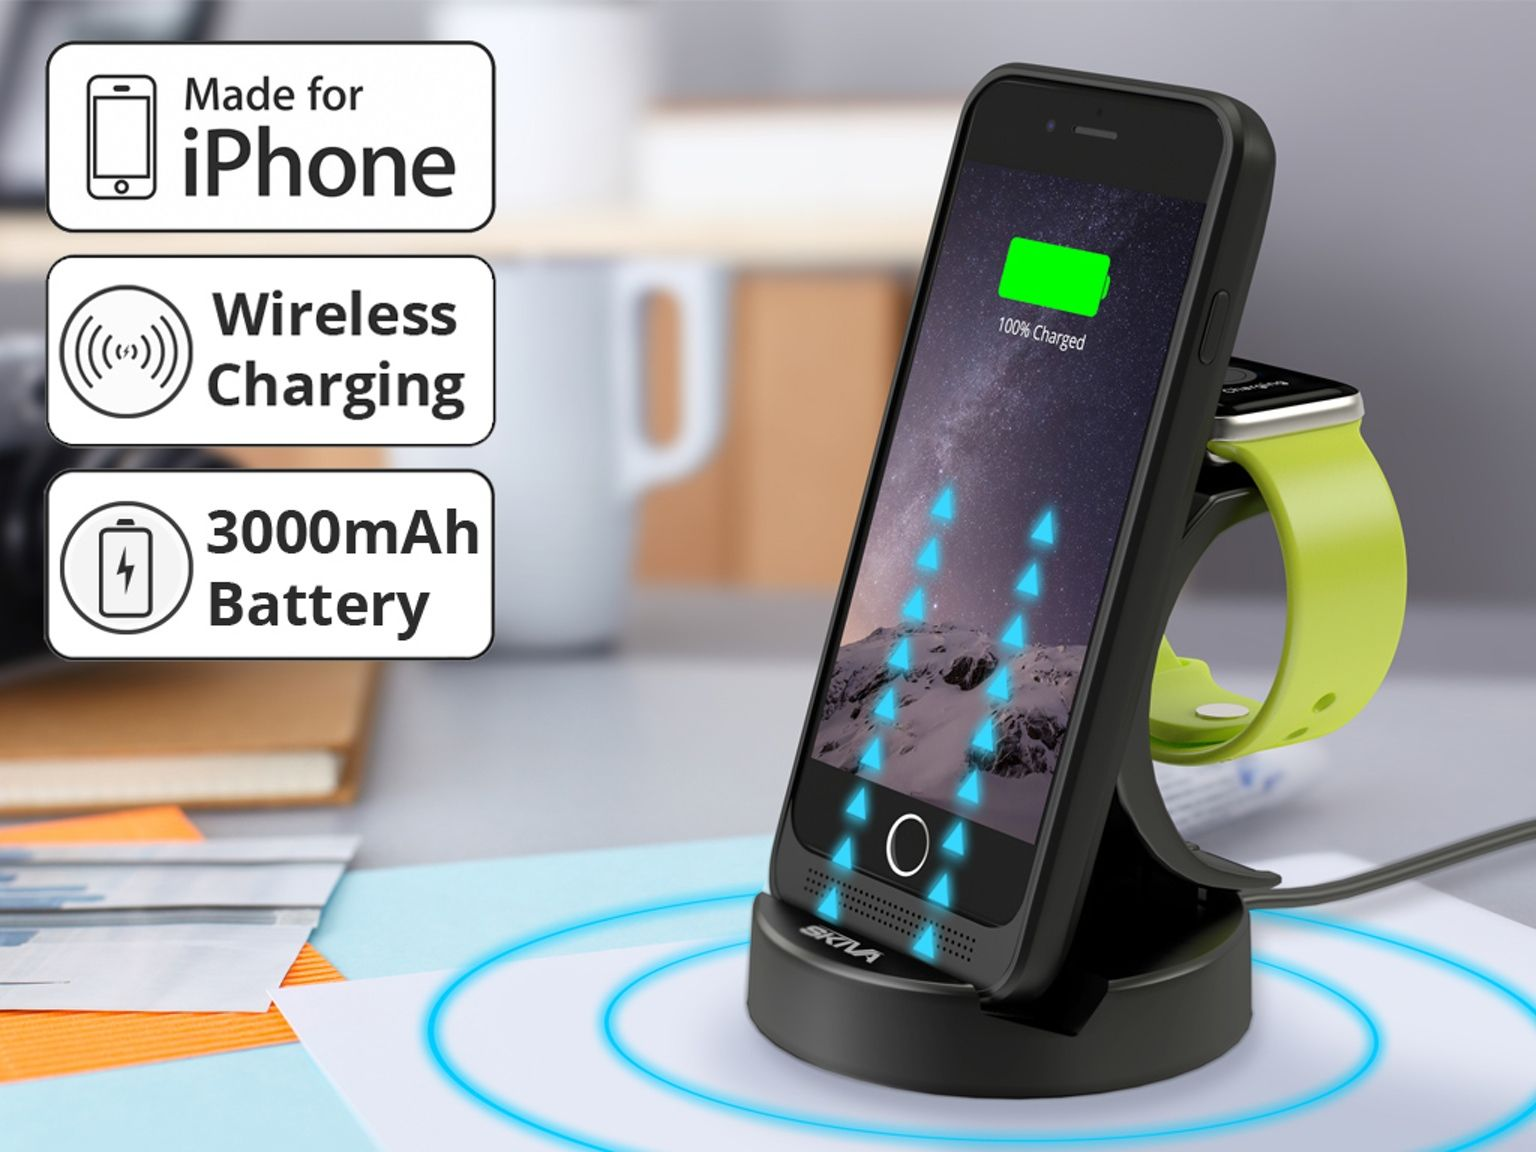 Apple Mfi Certified 3000mah Iphone 6 Battery Case With Wireless Watch Charging Dock Stand Optional Included